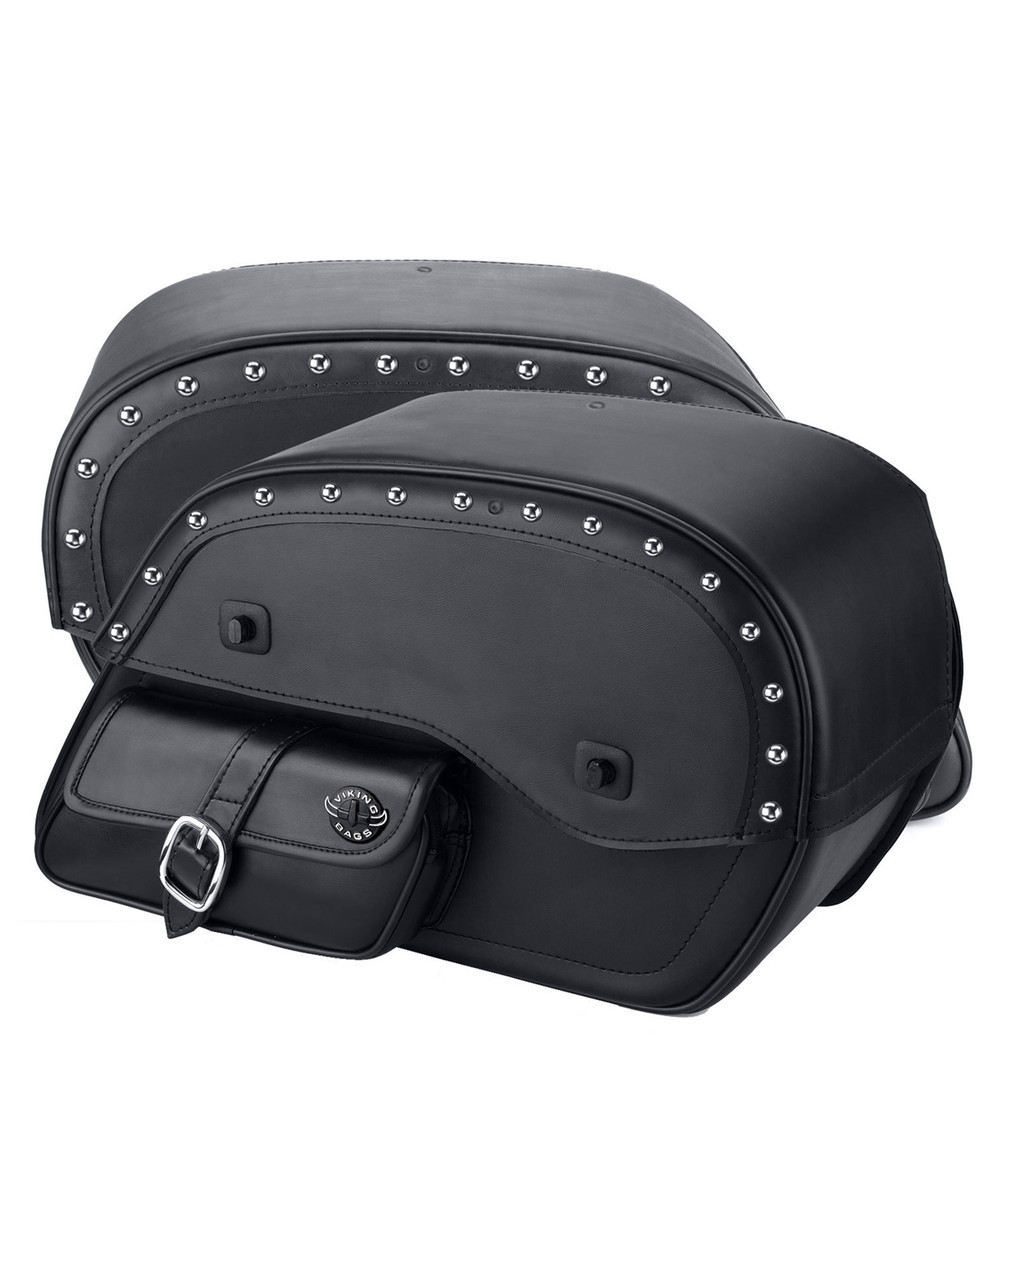 Indian Chief Standard Side Pocket Studded Large Motorcycle Saddlebags Both Bags View